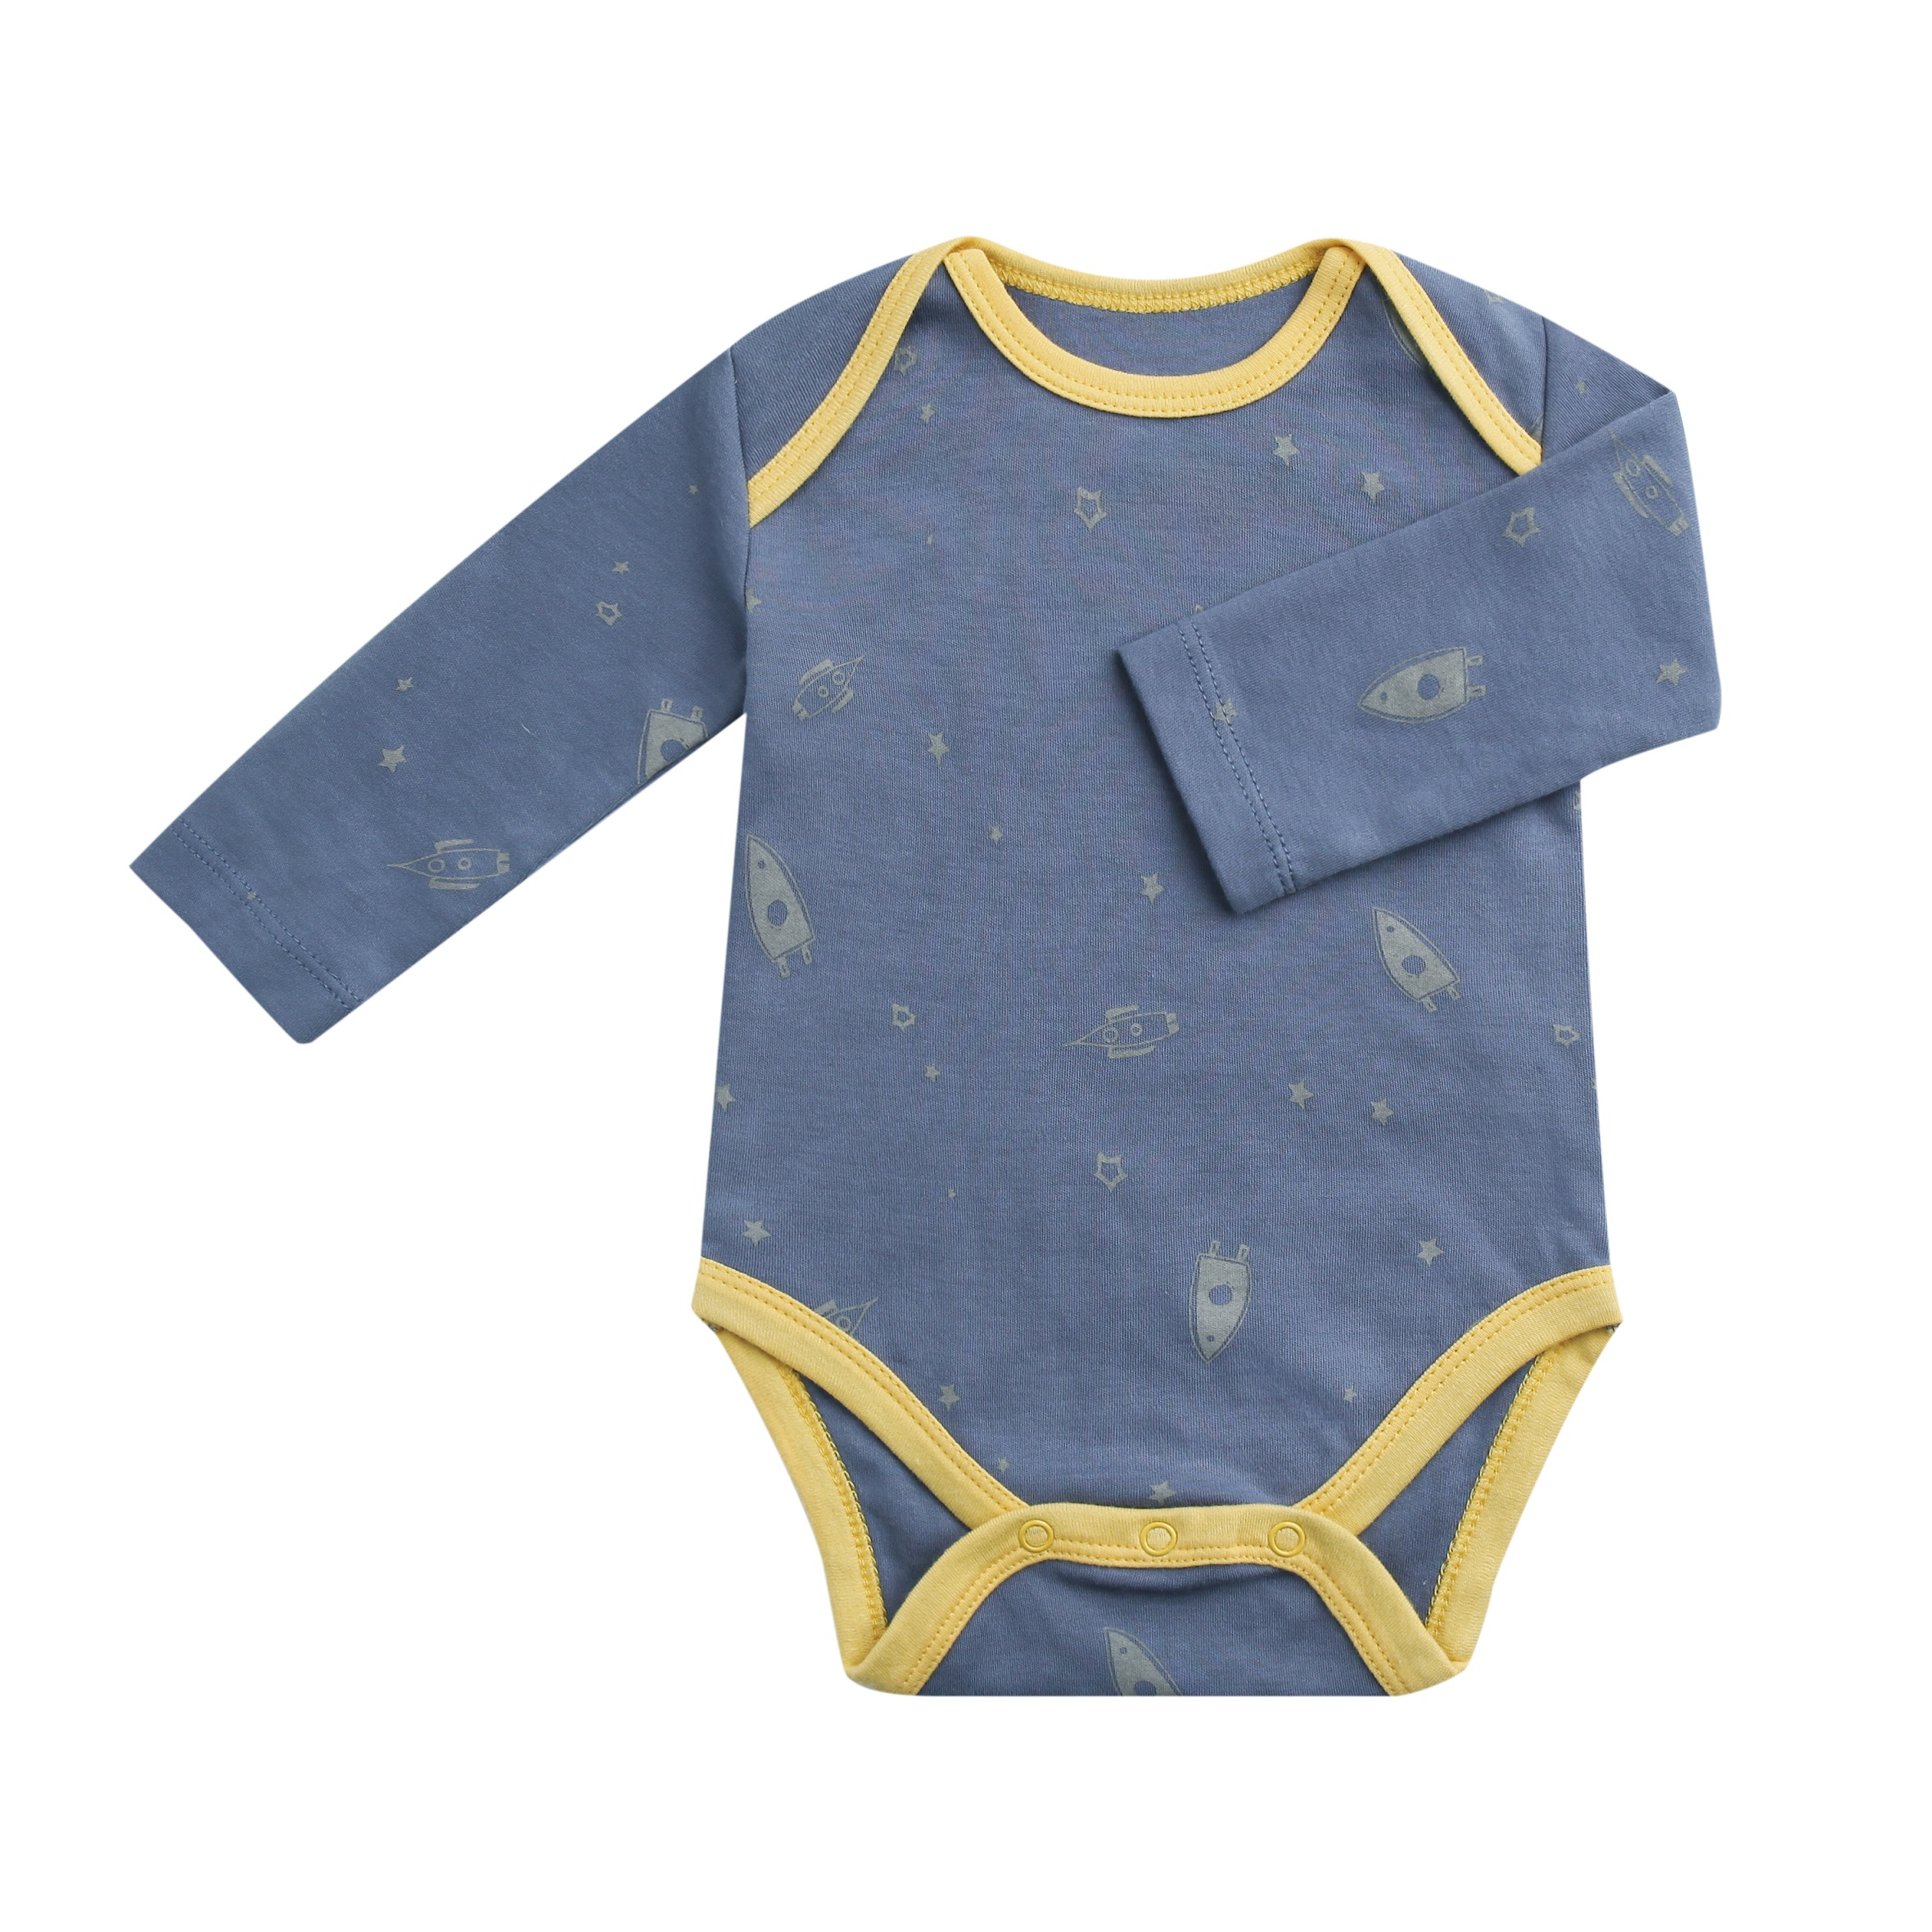 Factory price OEM service baby body suit 4pcs per set for unisex toddler, As picture/customized